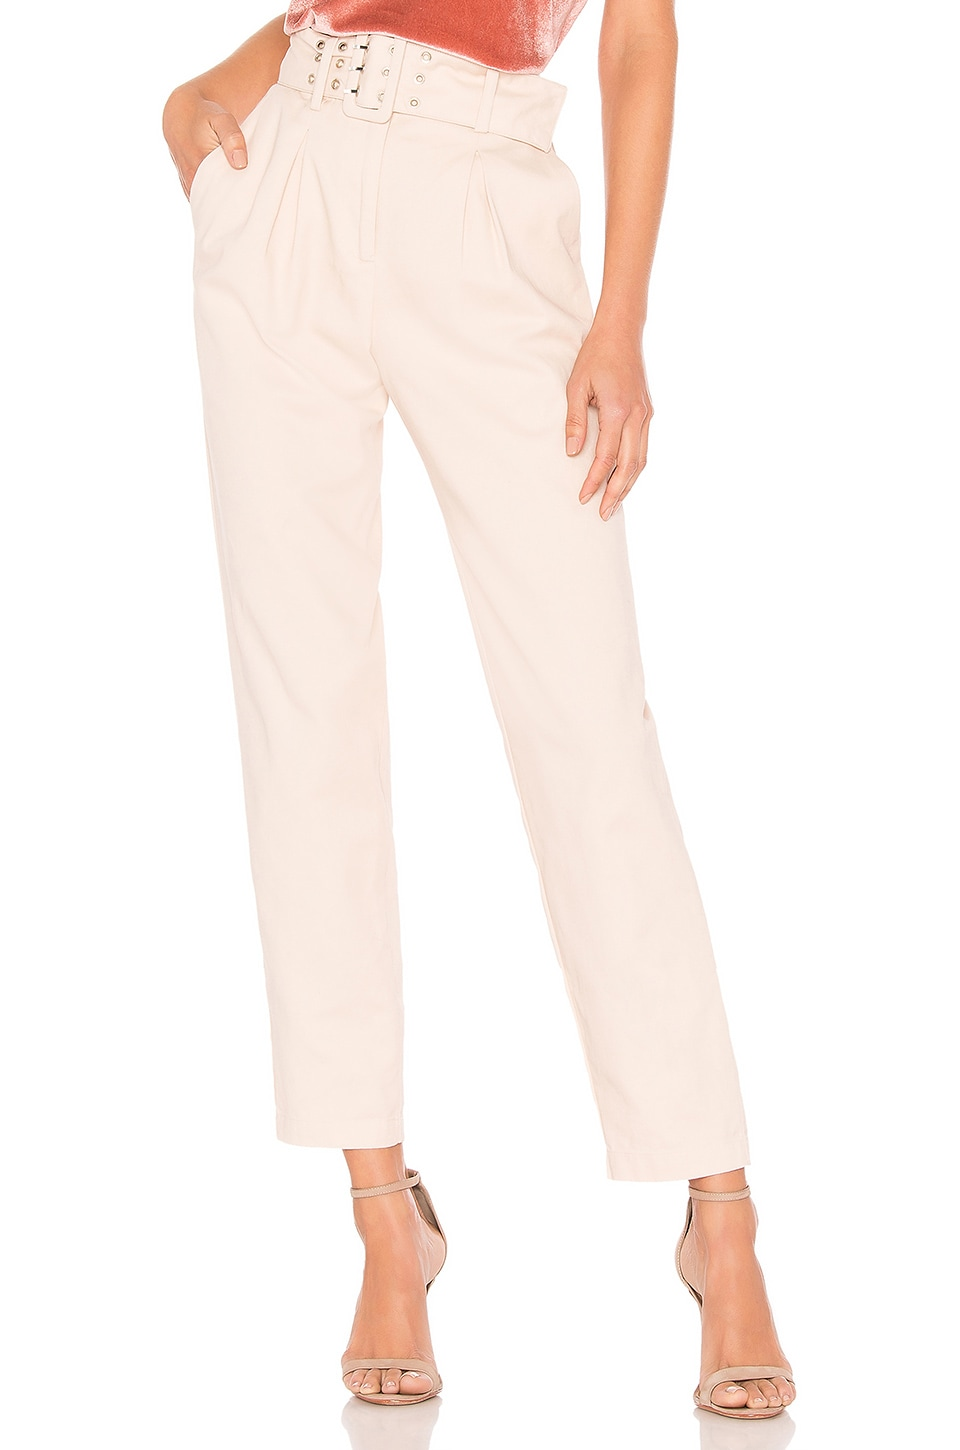 Tularosa Arin Pants in Ecru